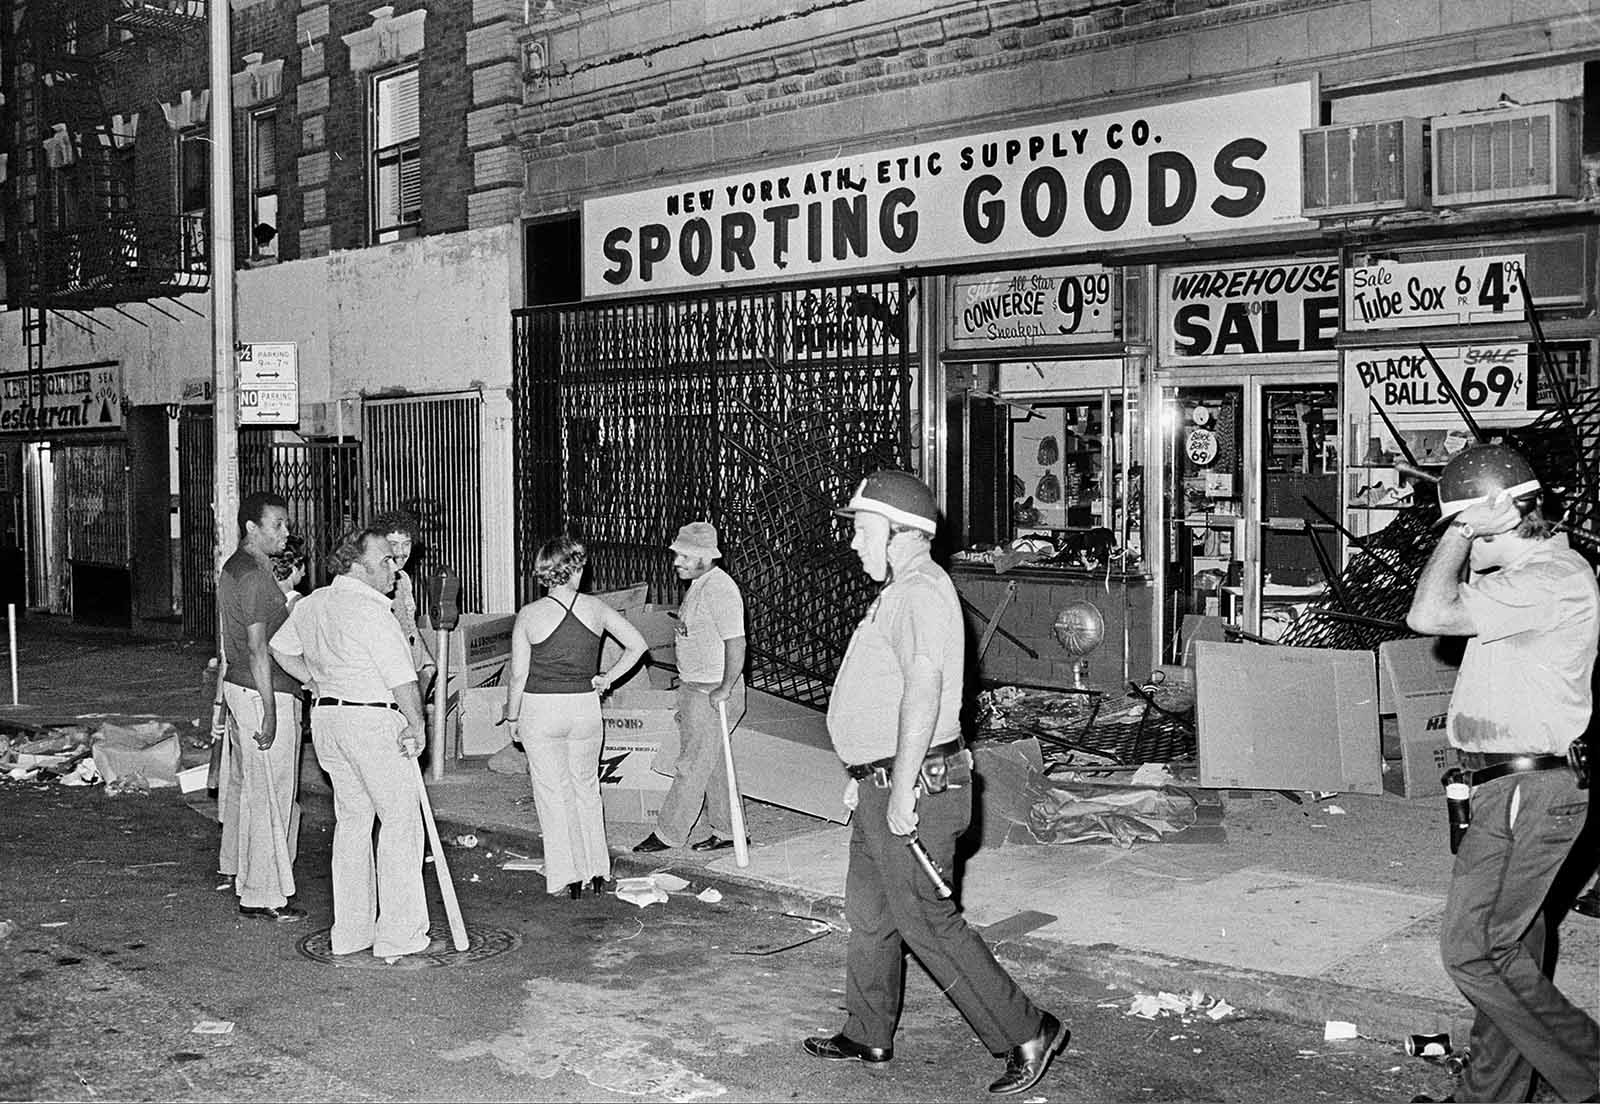 Owners and employees of a sporting goods store stand guard outside with baseball bats after the store on New York City's Upper West Side was looted during massive power failure, Wednesday night, July 13, 1977. Police patrolling the area walk by the store.